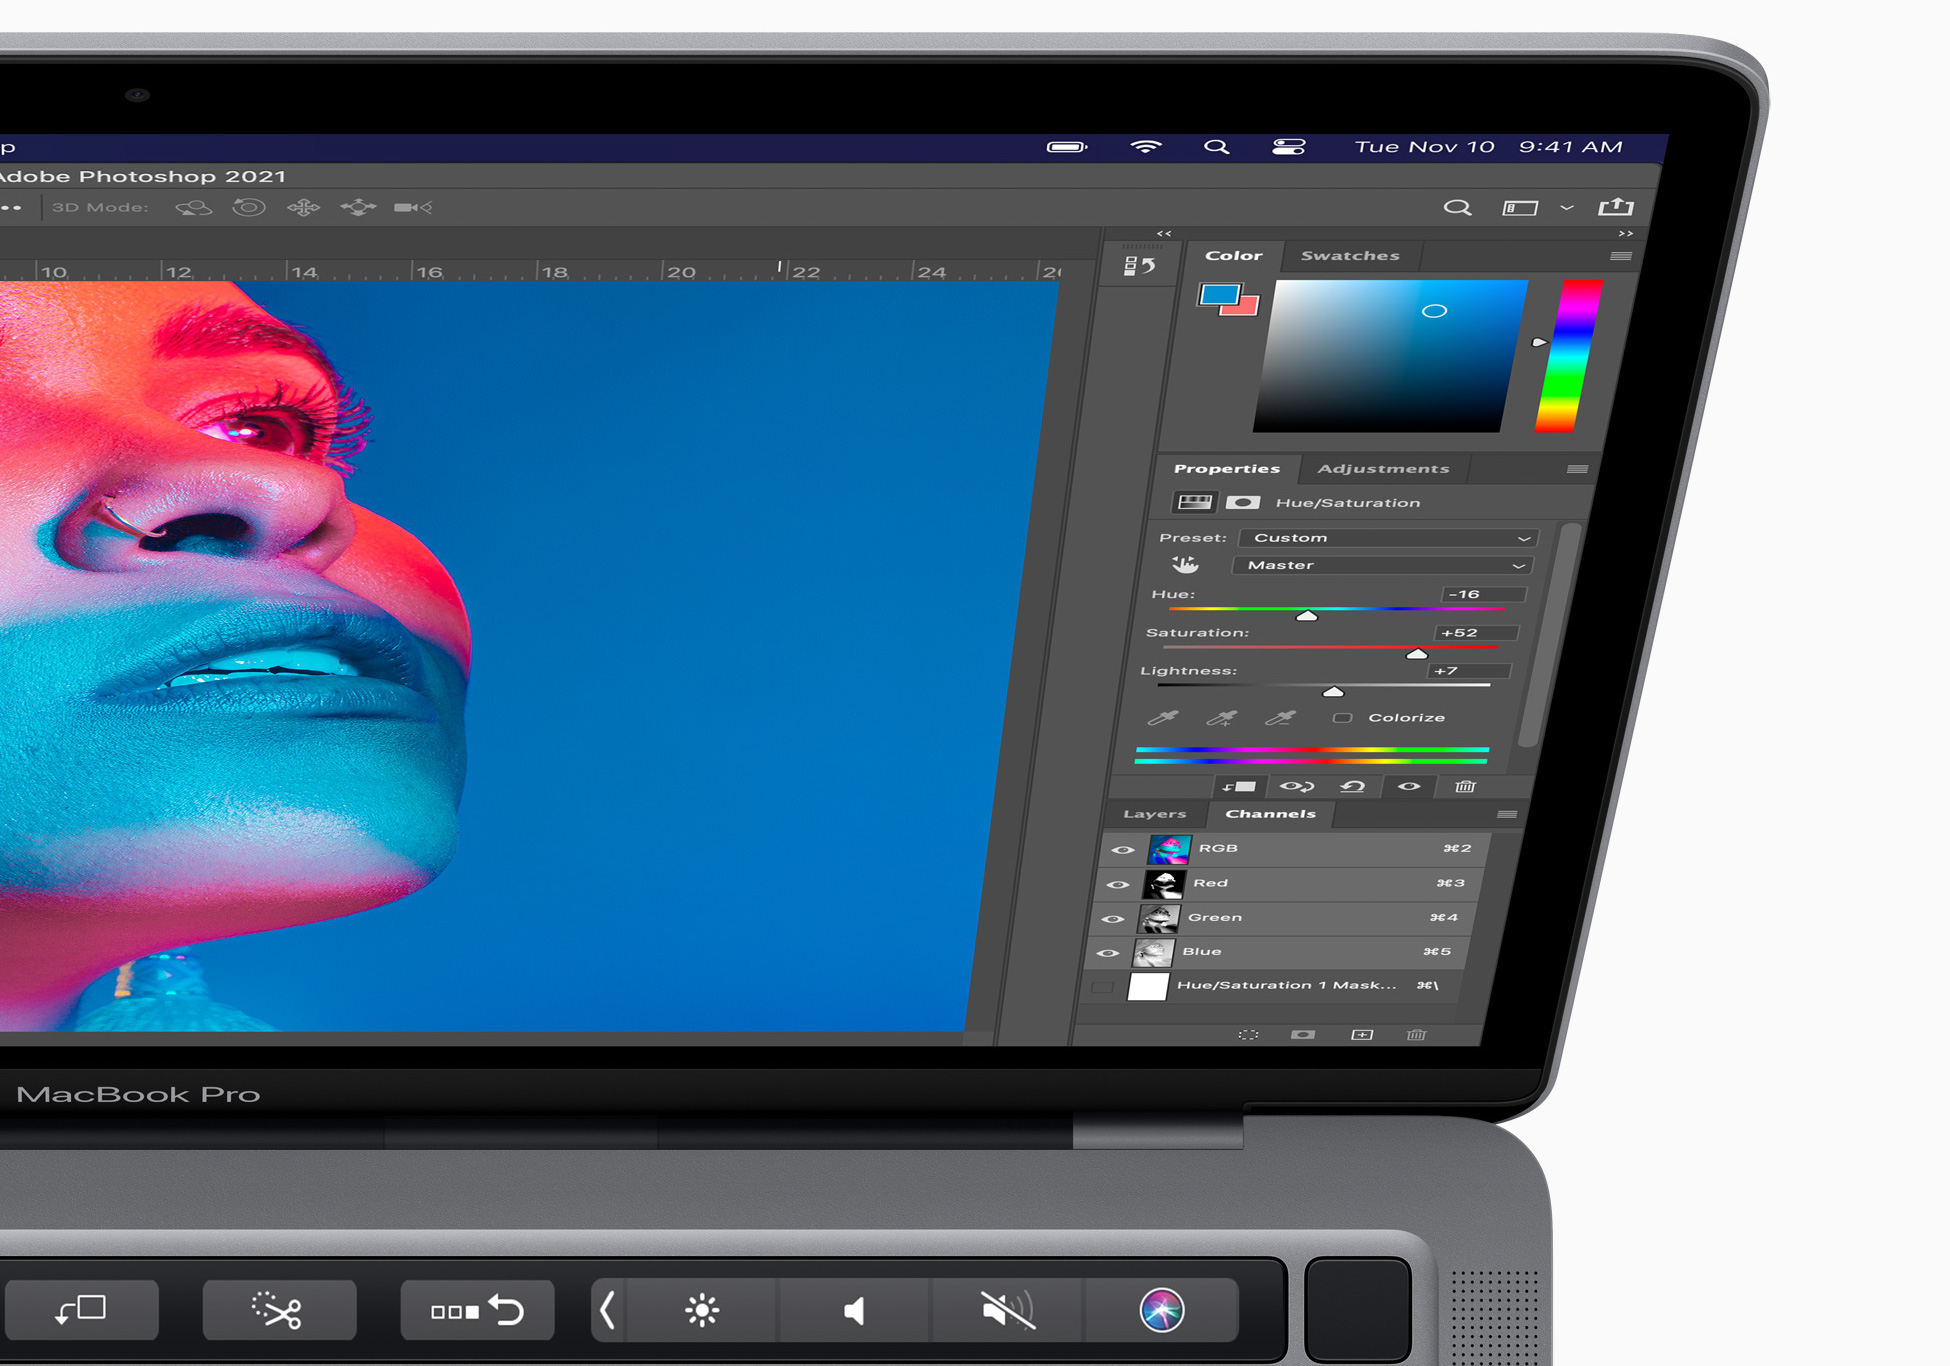 Adobe on M1 Mac